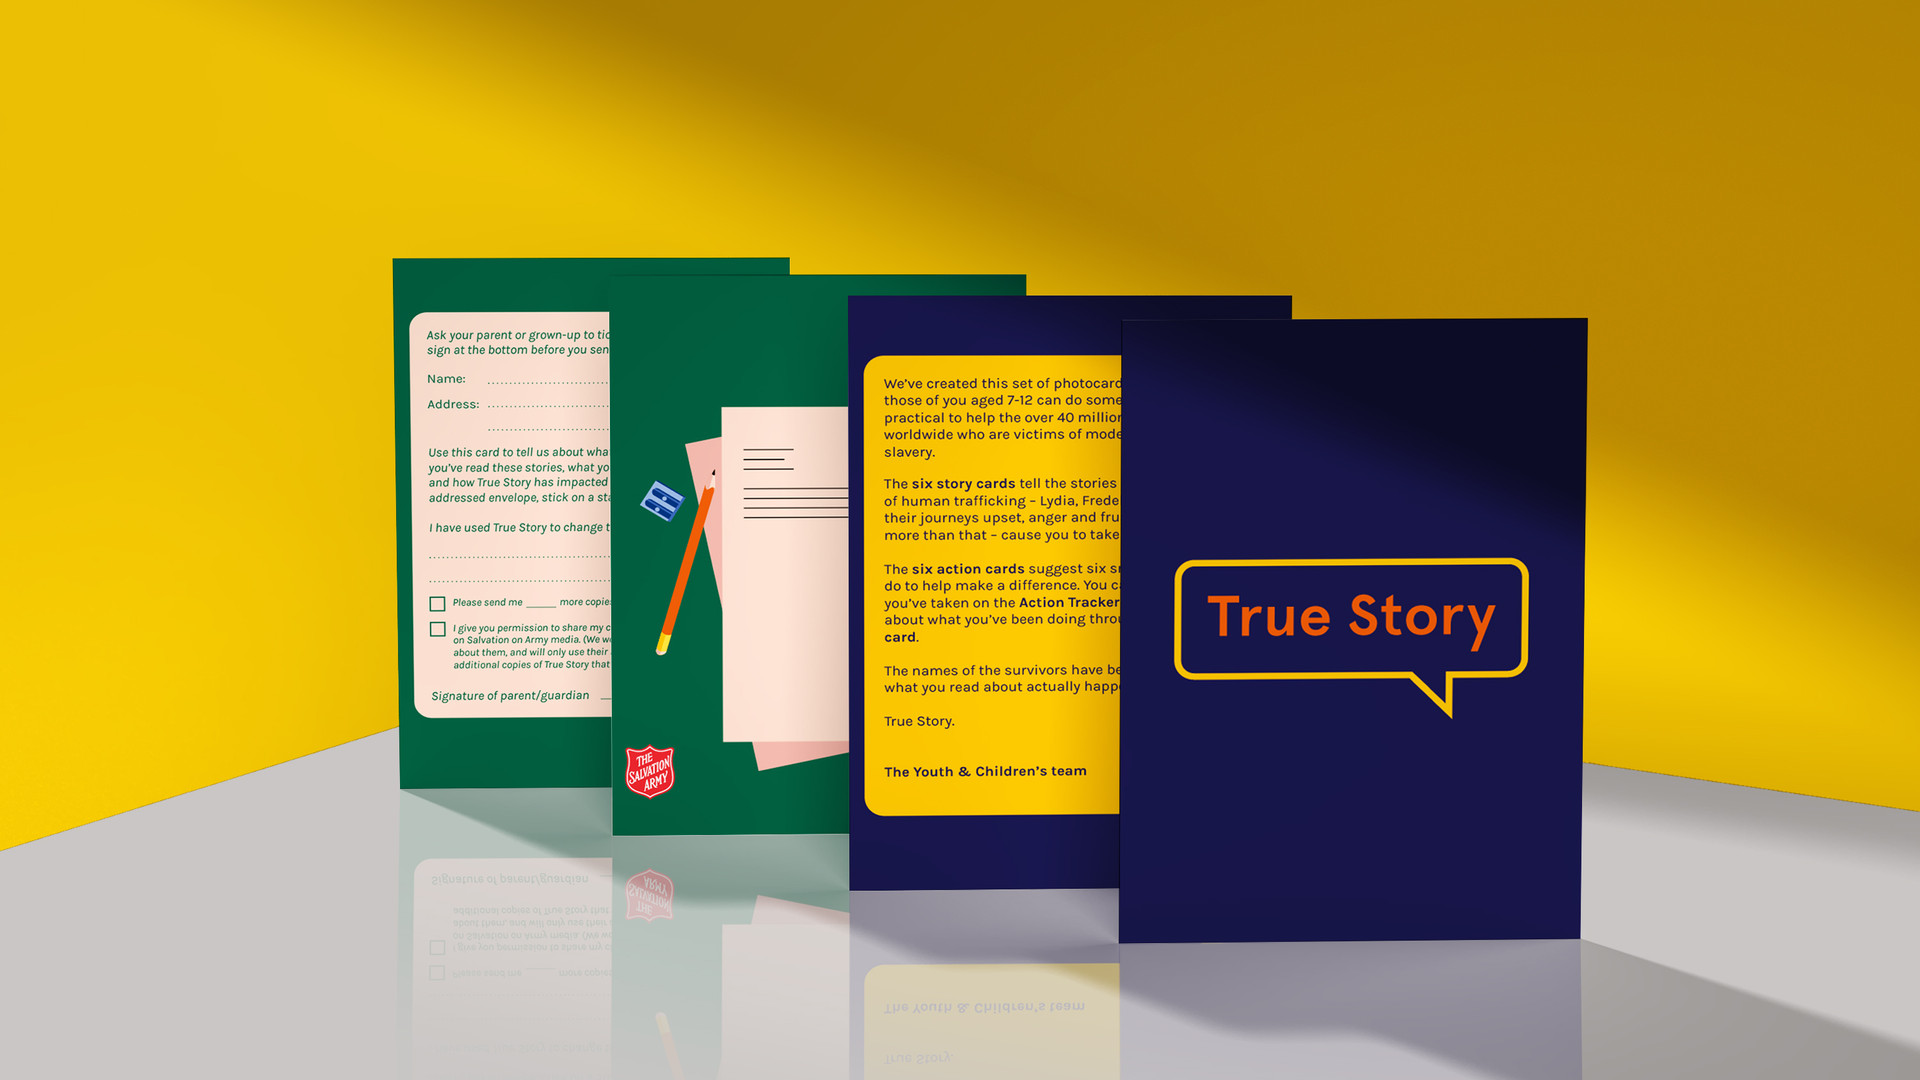 Mockup_Front_View_Pages.jpg